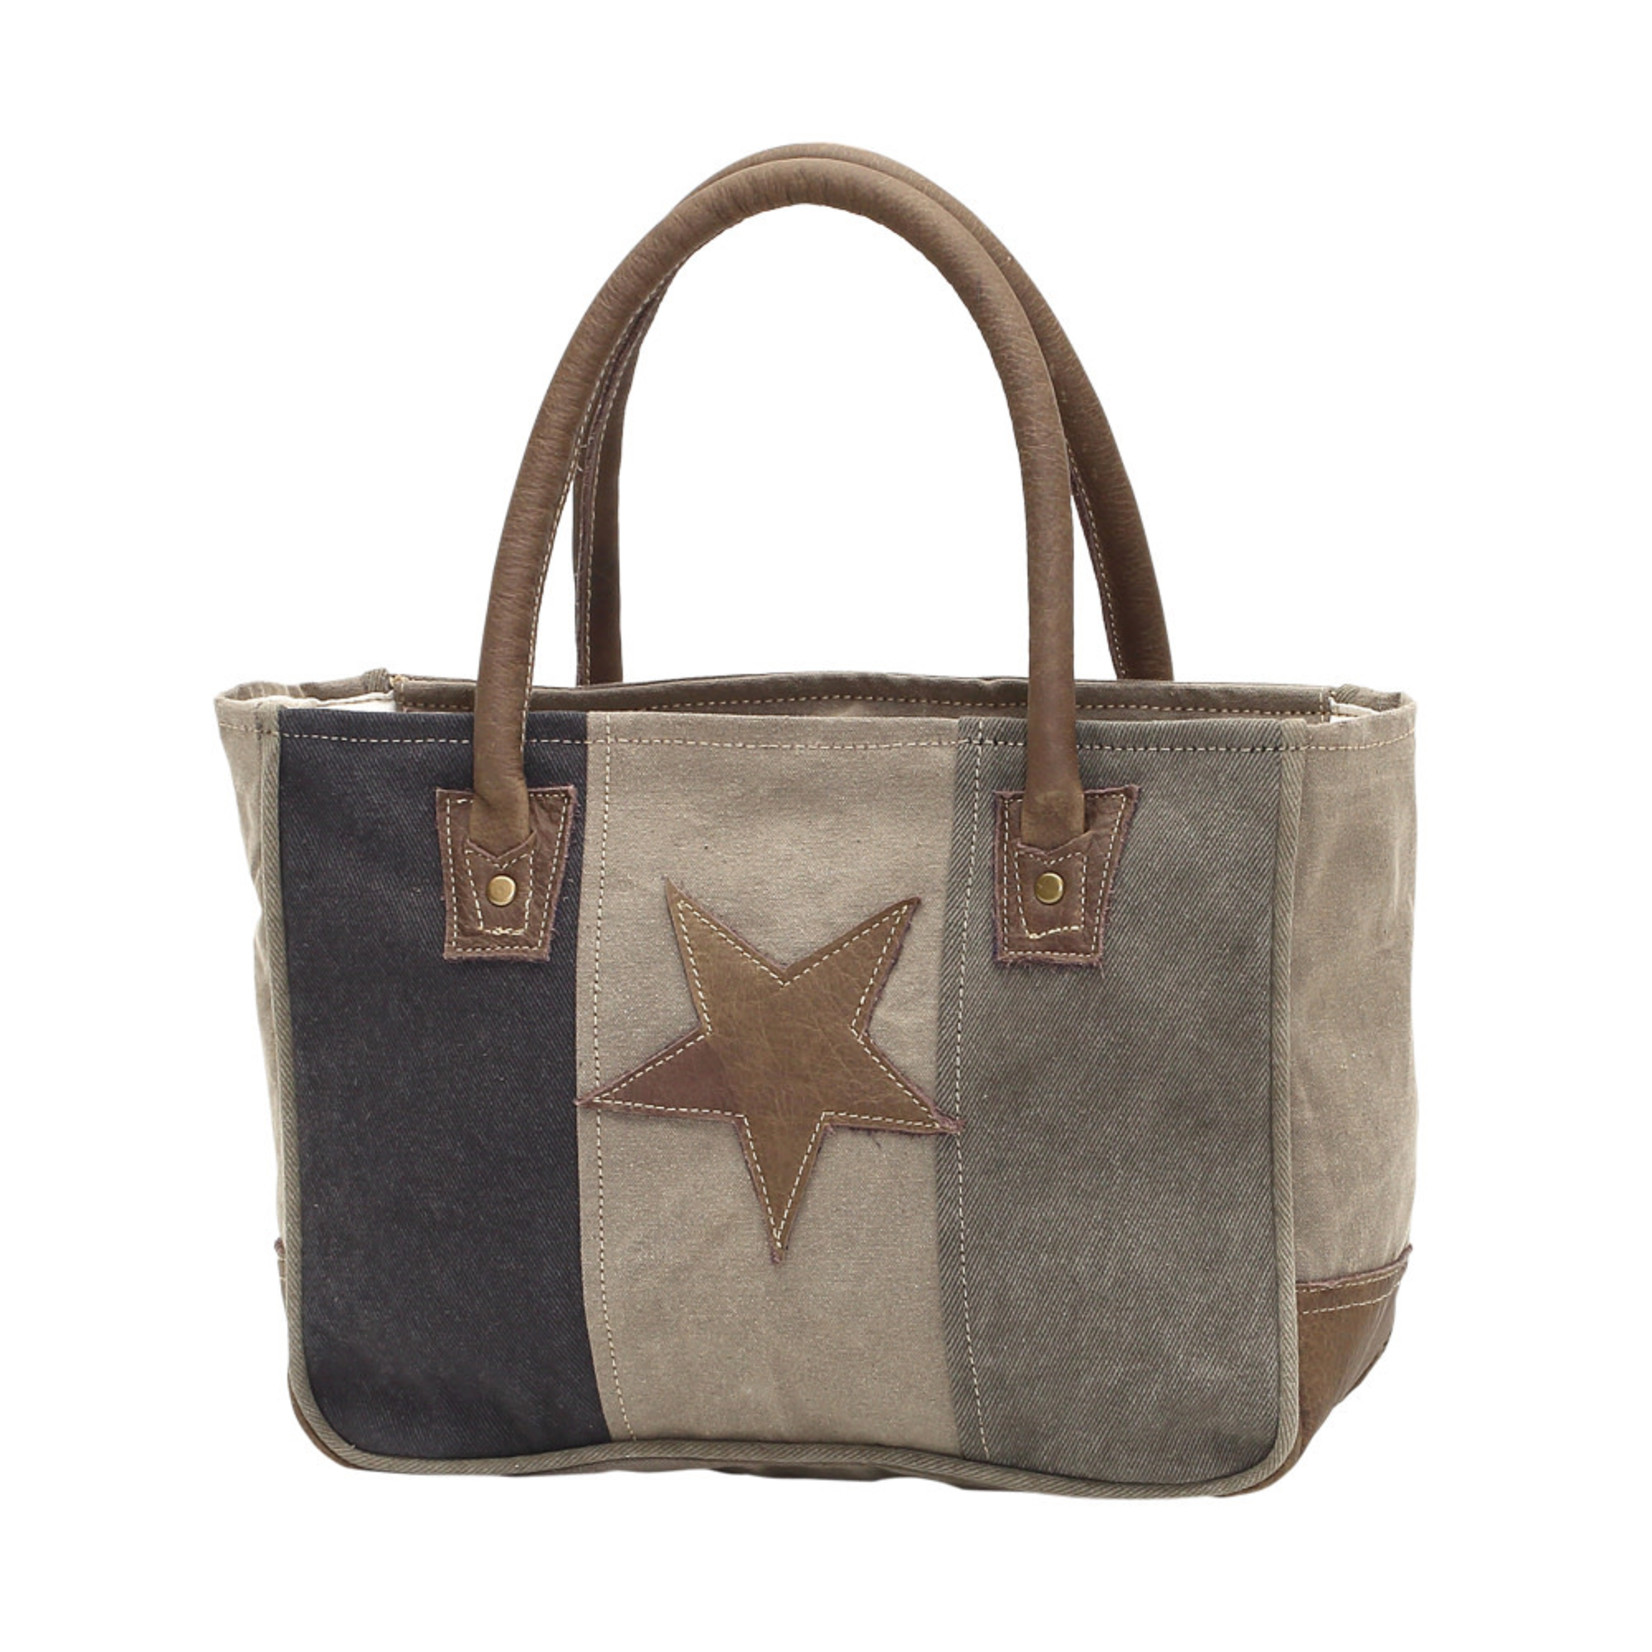 Myra Bags S-1047 Star on Canvas Small Bag